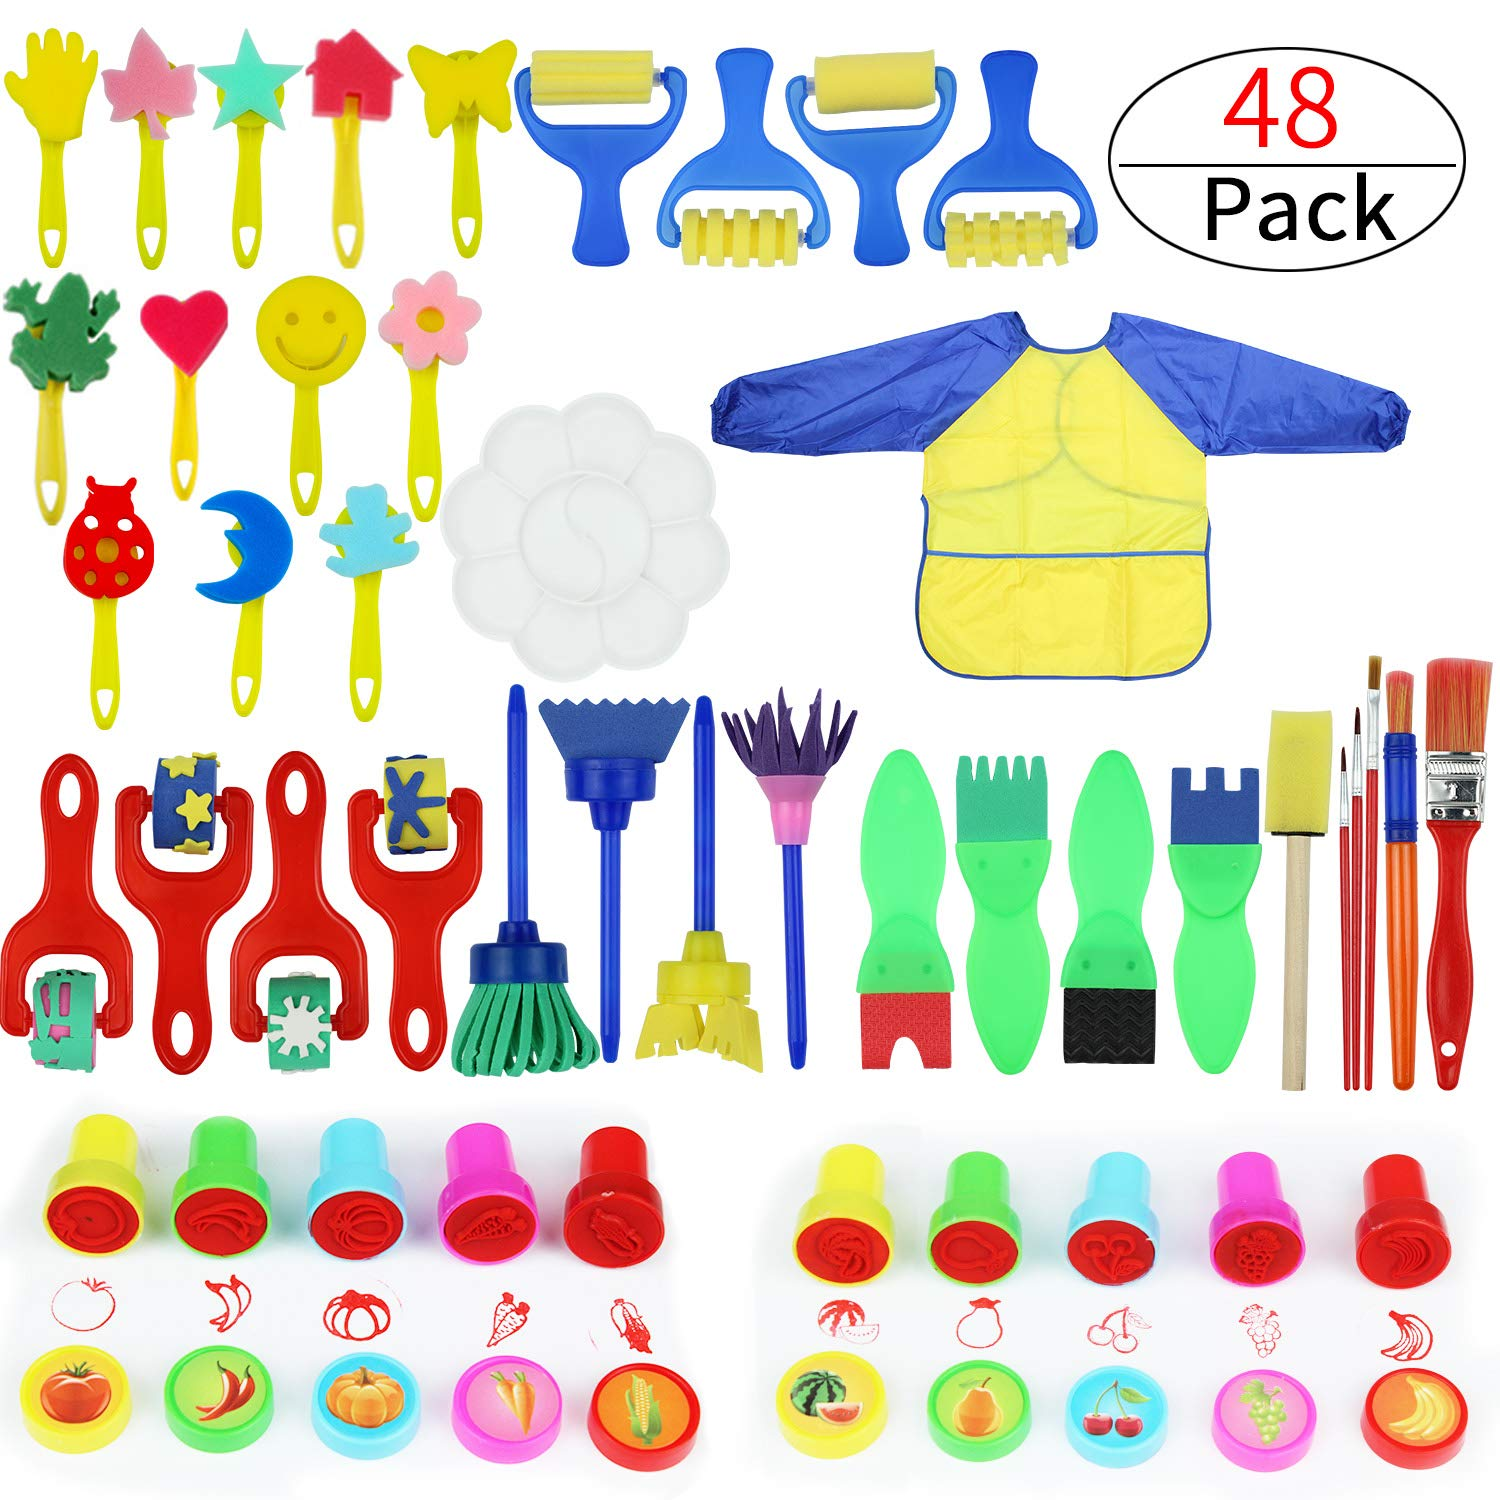 Painting Kits for Kids, Early Learning Kids Paint Set, Paint Sponges for Kids, 45 Pieces Mini Flower Sponge Paint Brushes. Assorted Painting Drawing Tools in a Clear Durable Storage Pouch Zoneyee